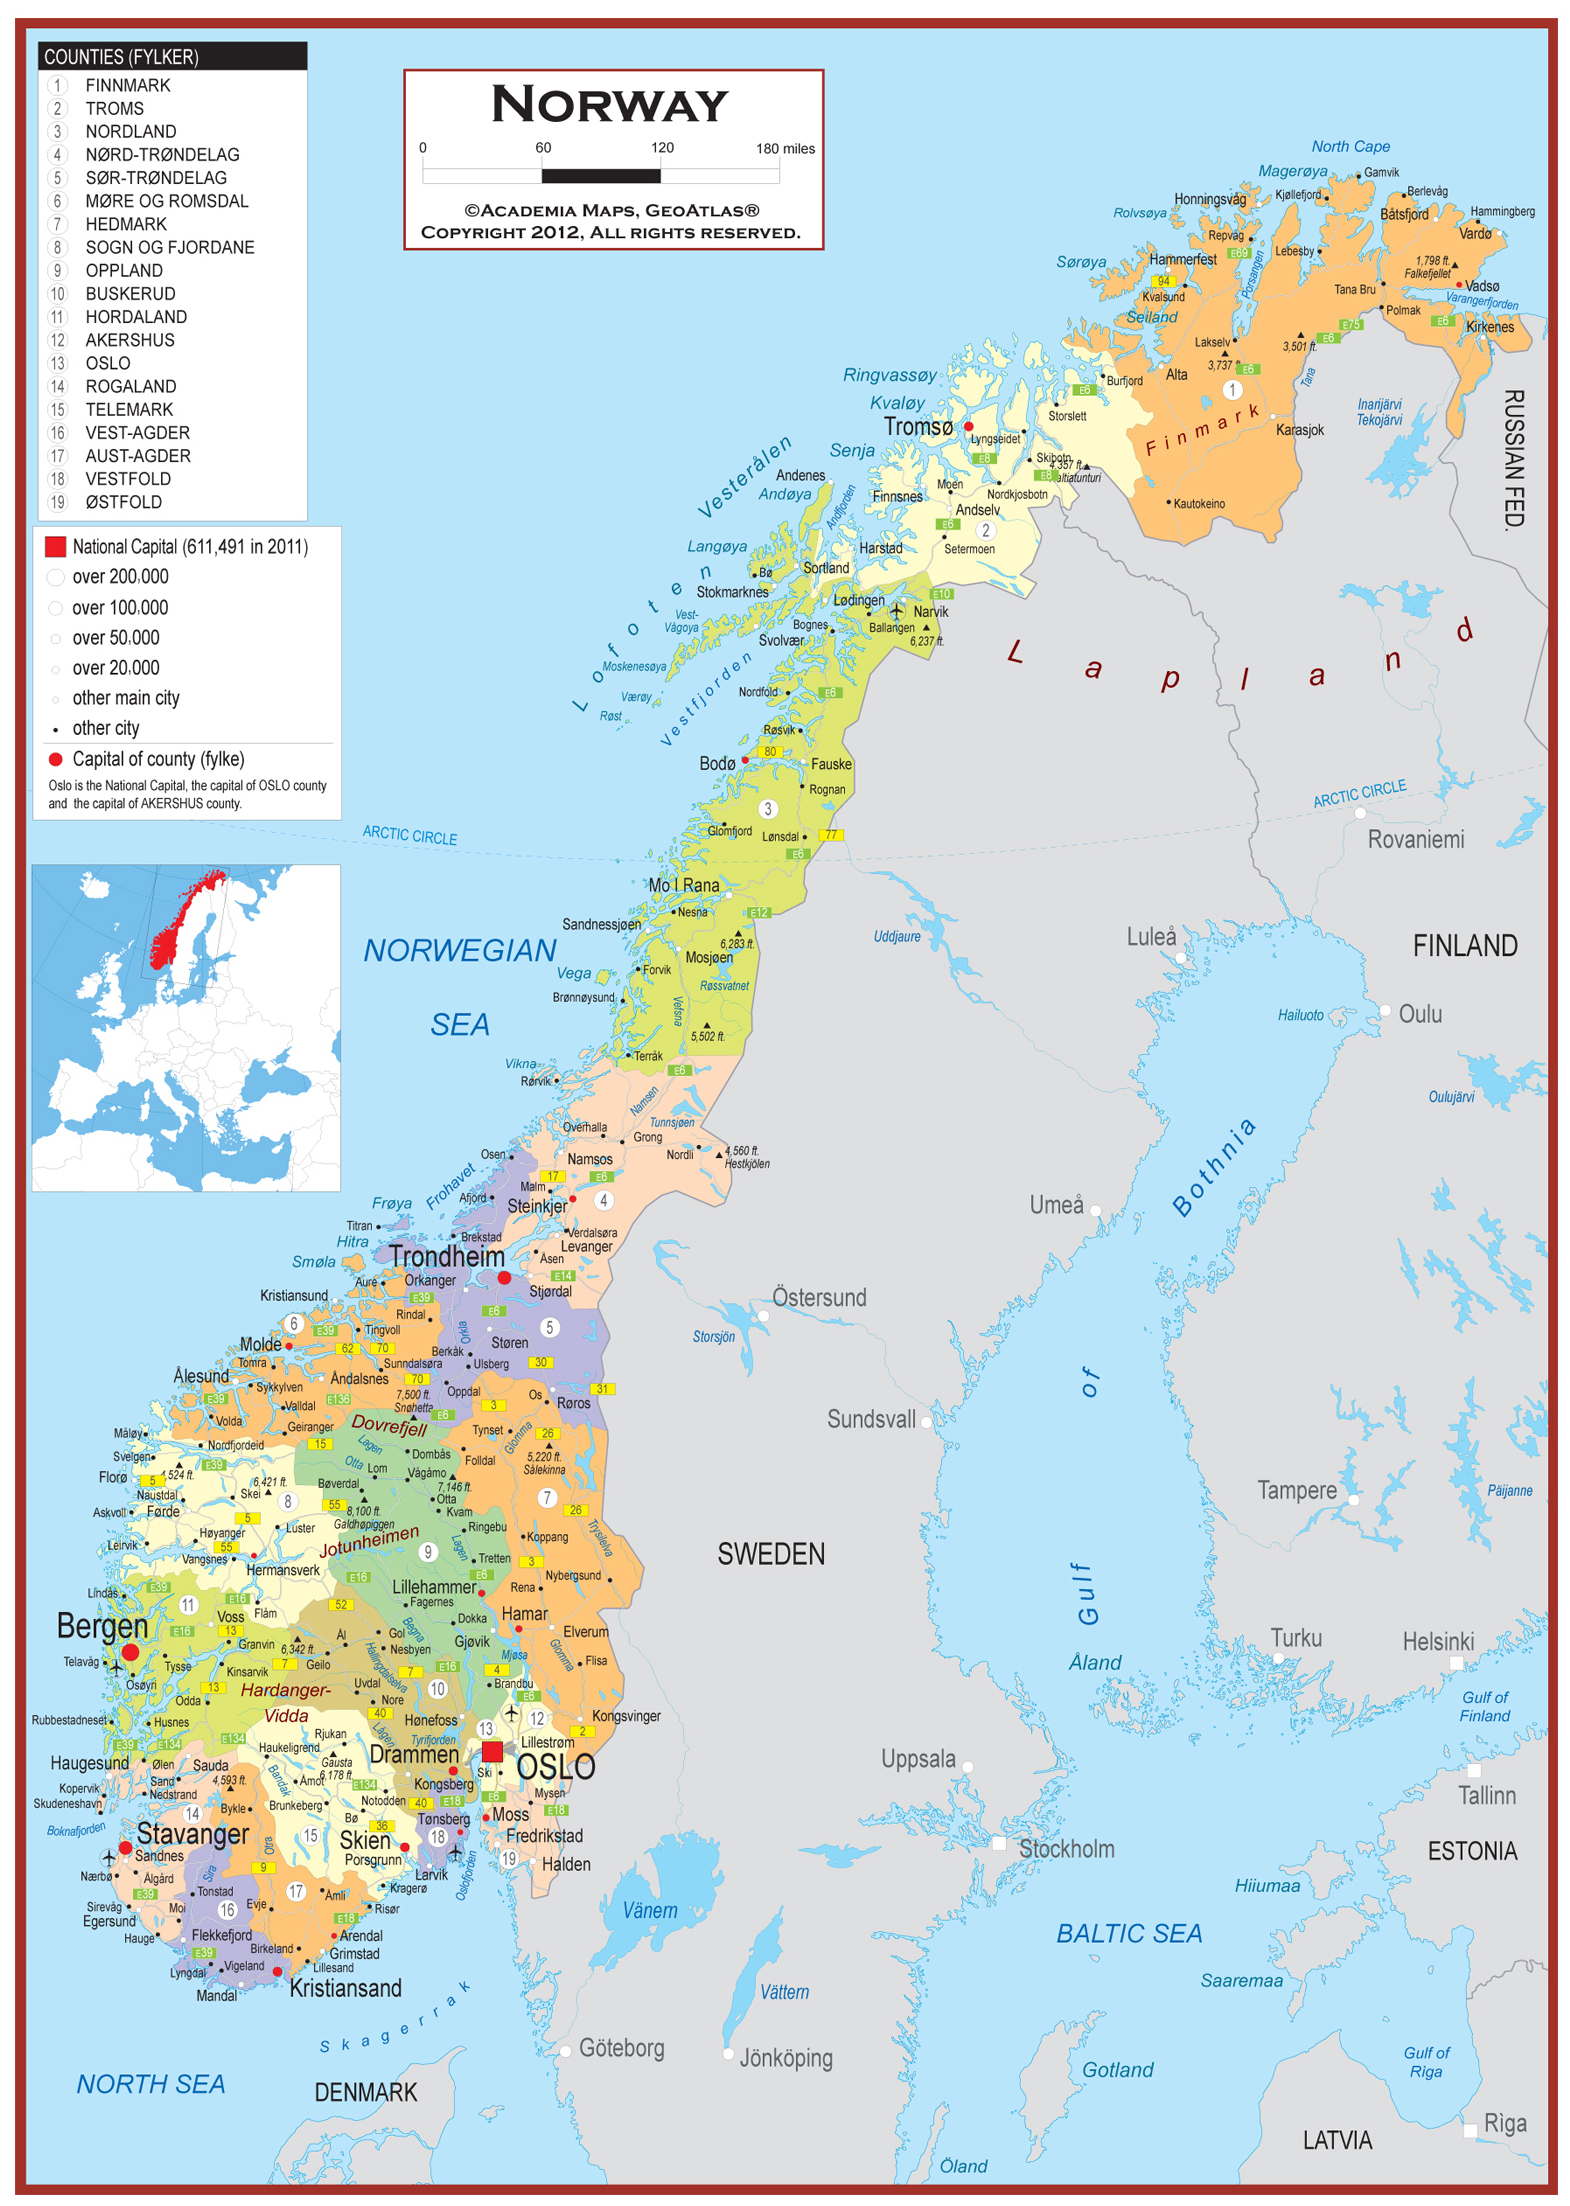 GONORLAND-MAP-OF-NORWAY.jpg